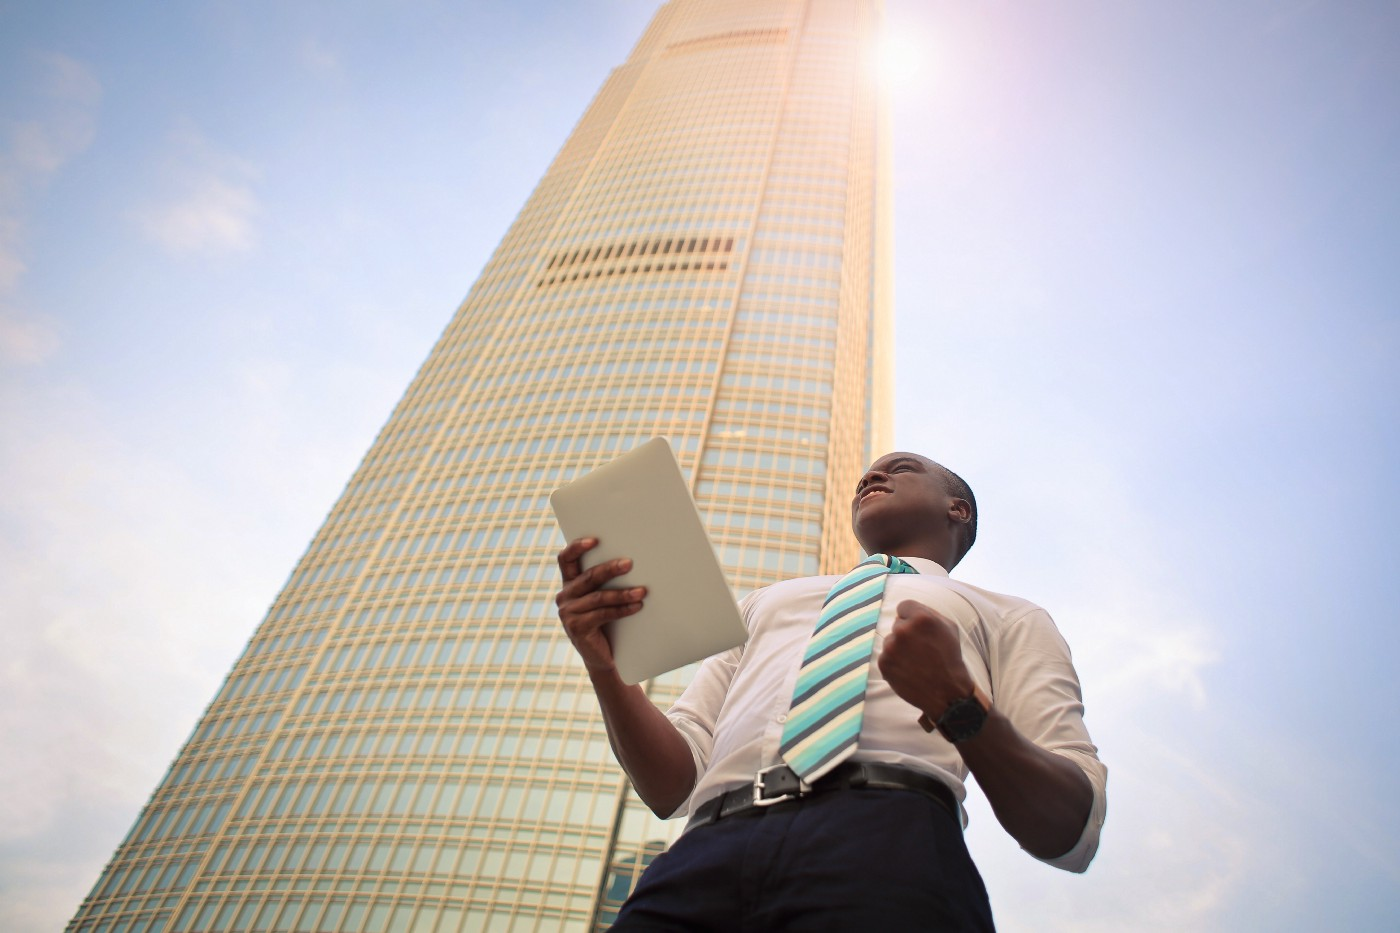 A business man standing in front of a high-rise building.